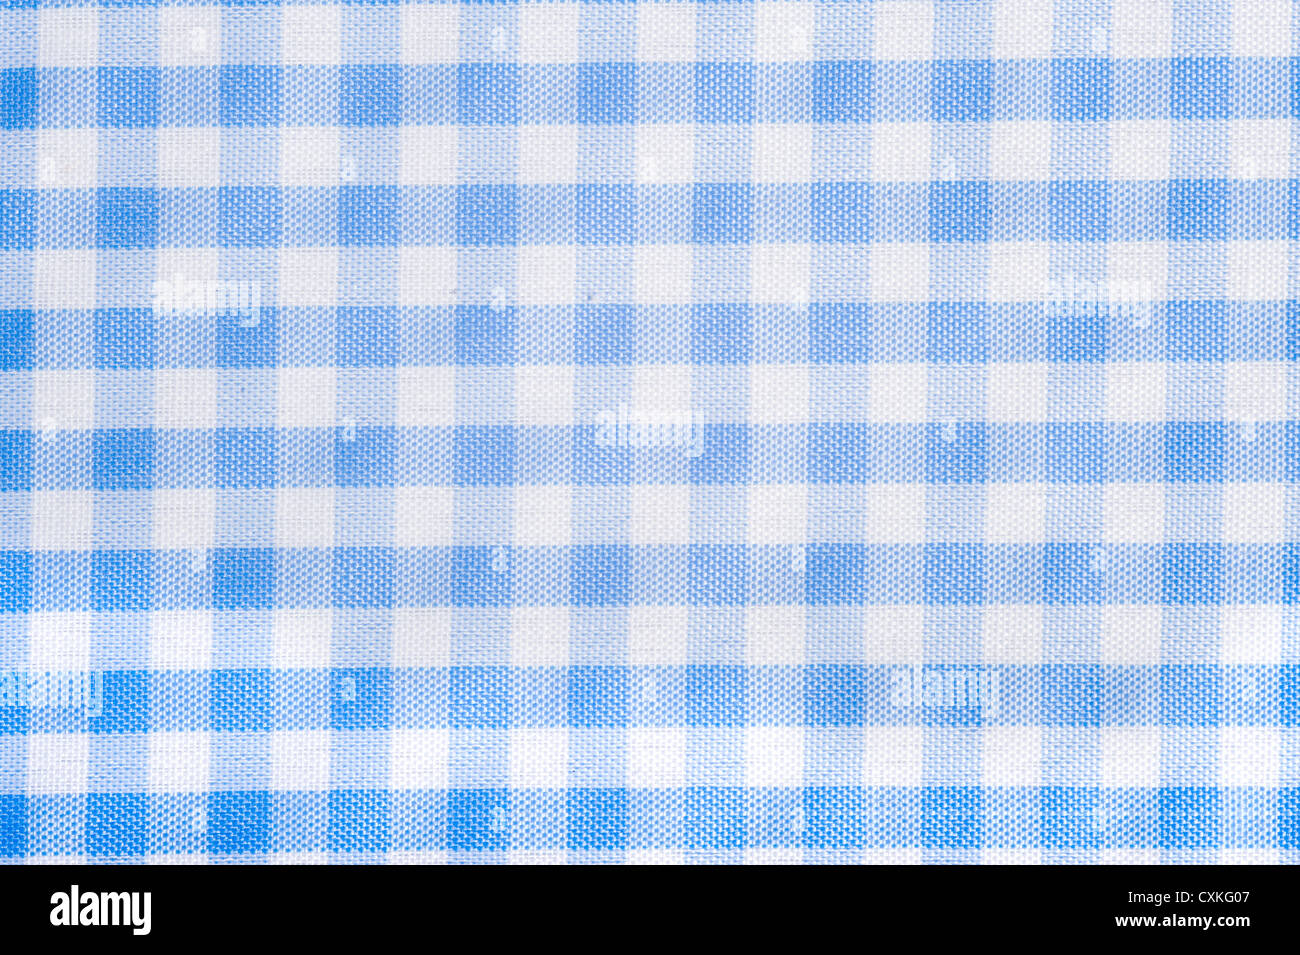 Superbe Light Blue Gingham Or Checked Tablecloth Background   Stock Image